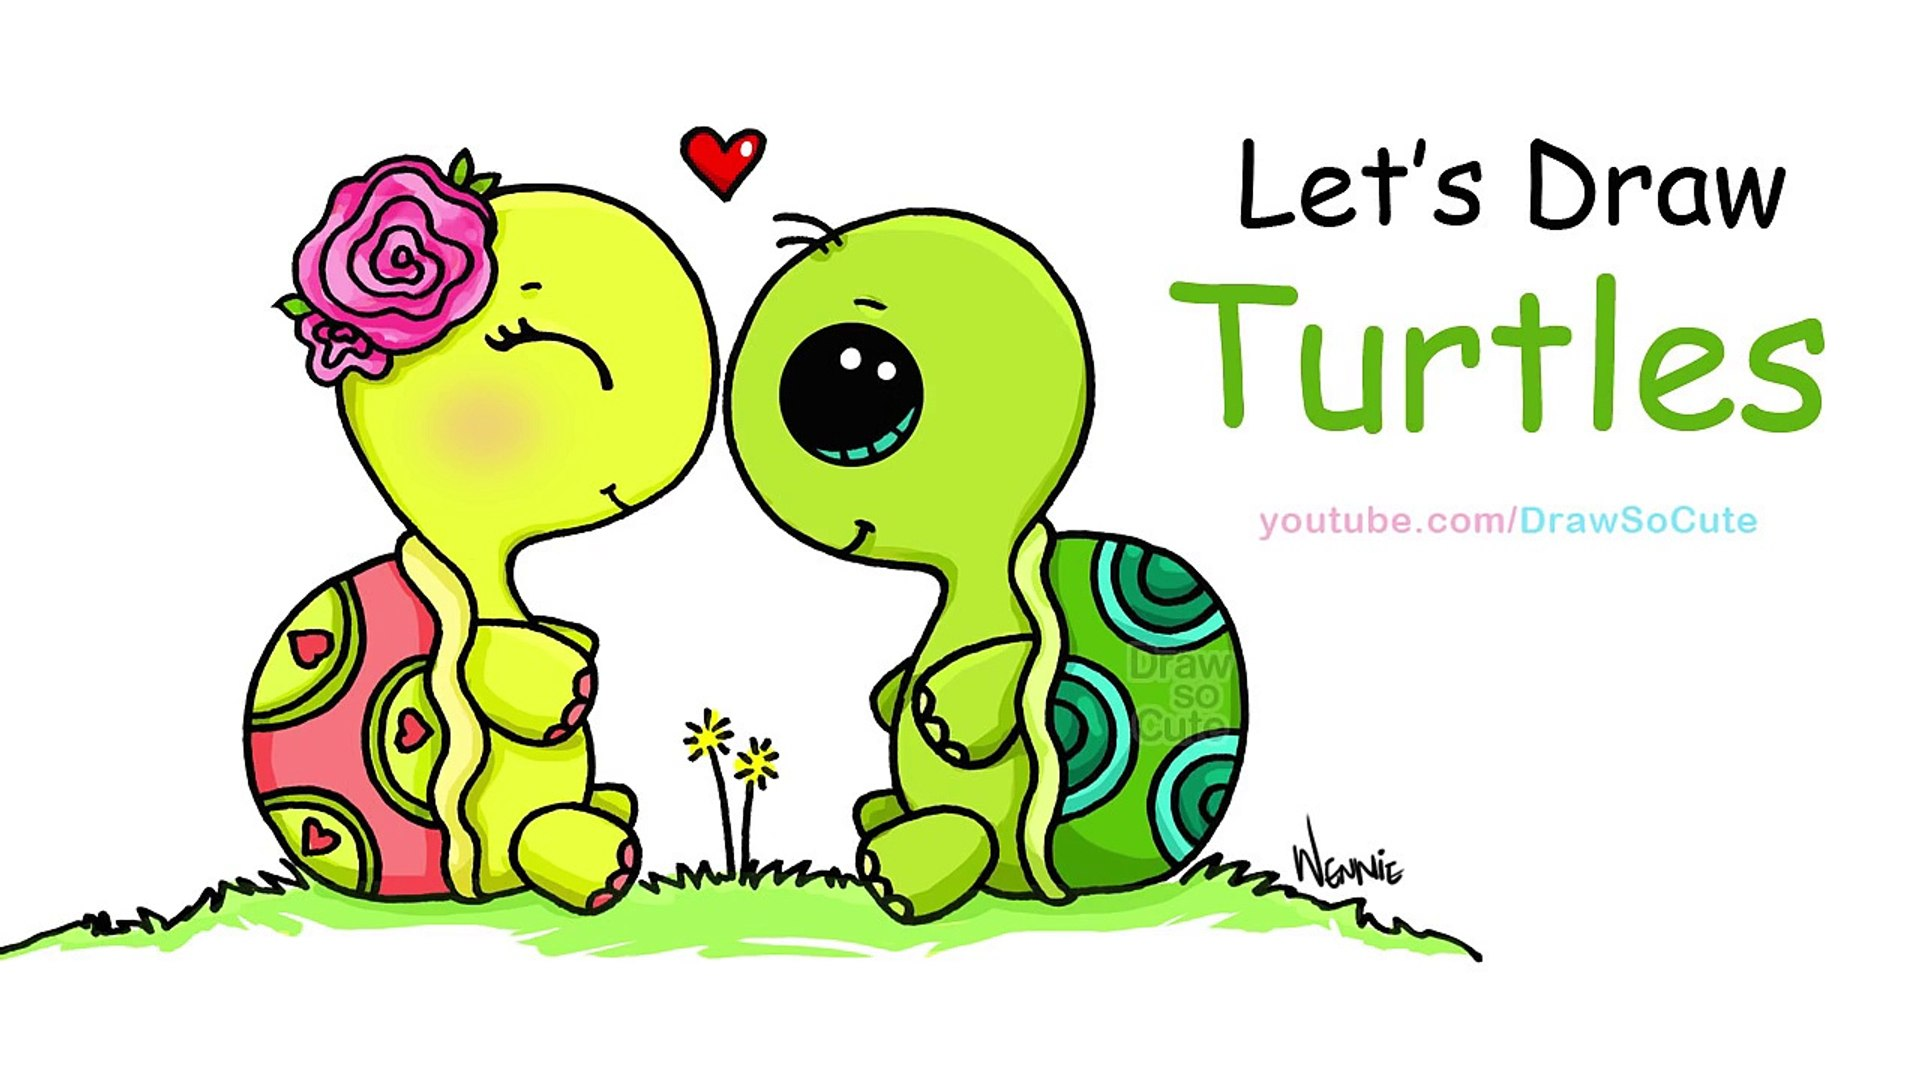 How To Draw Turtles Sweet And Cute Step By Step Video Dailymotion